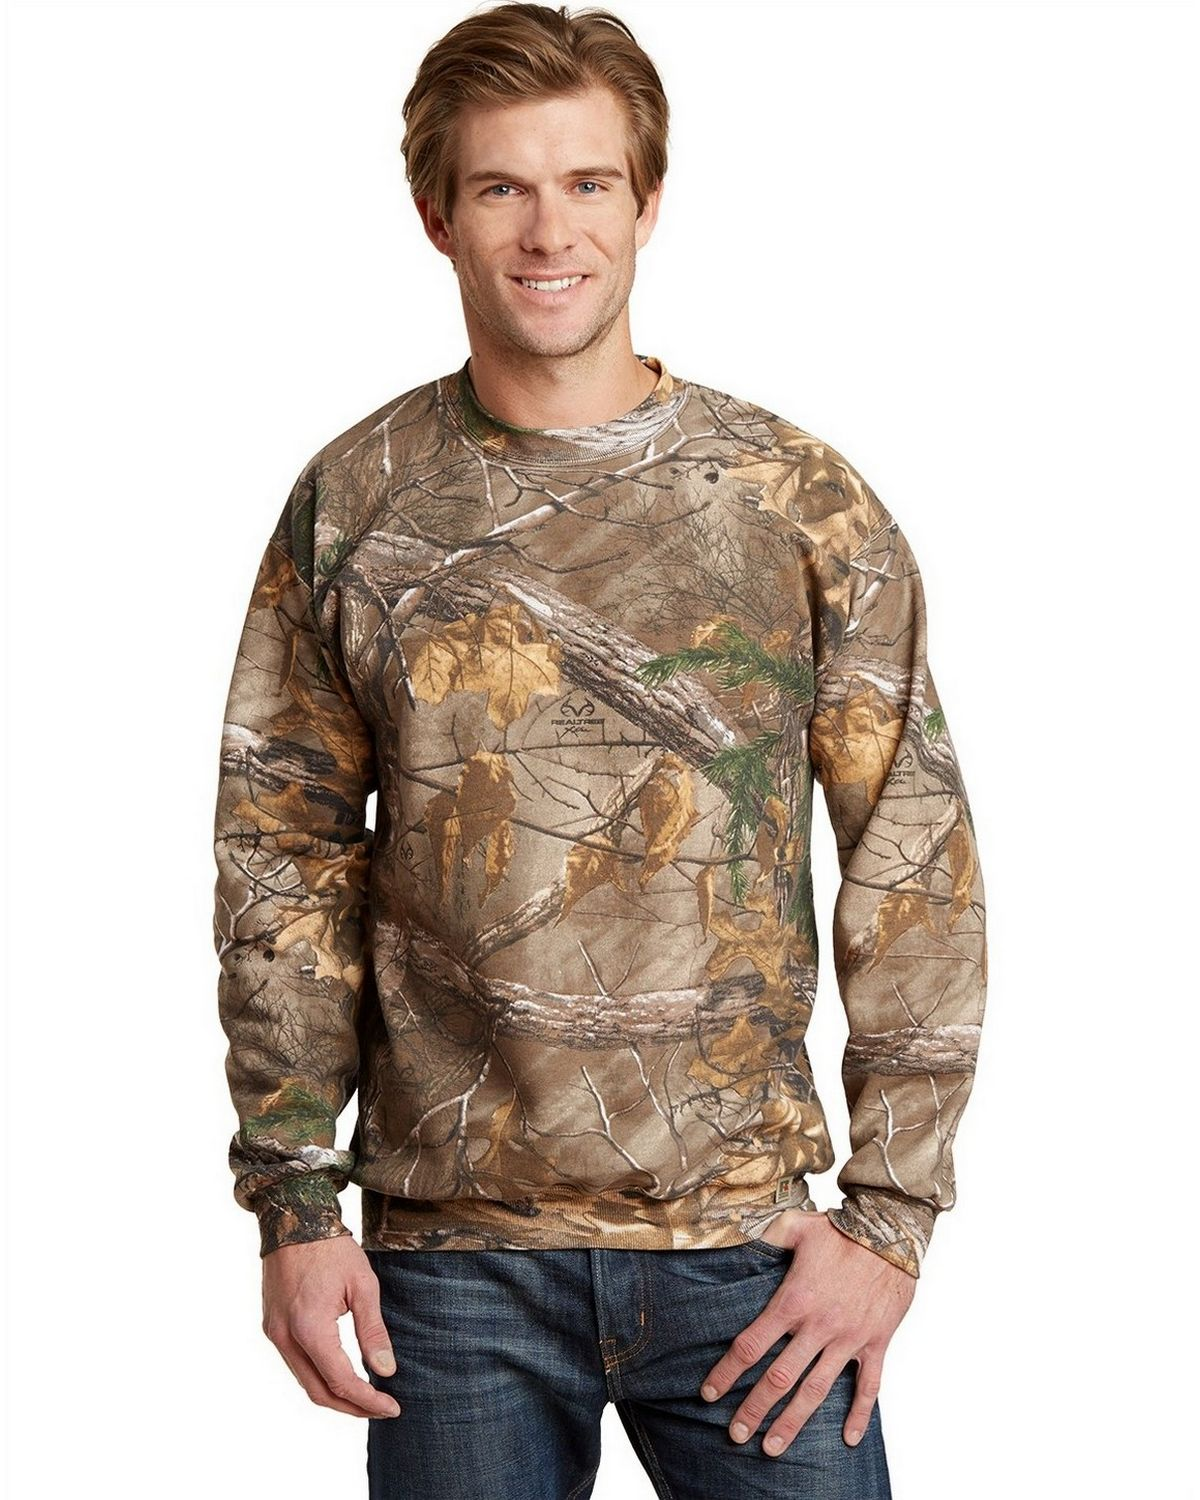 Russell Outdoors S188R Realtree Crewneck Sweatshirt - Realtree AP - XL S188R